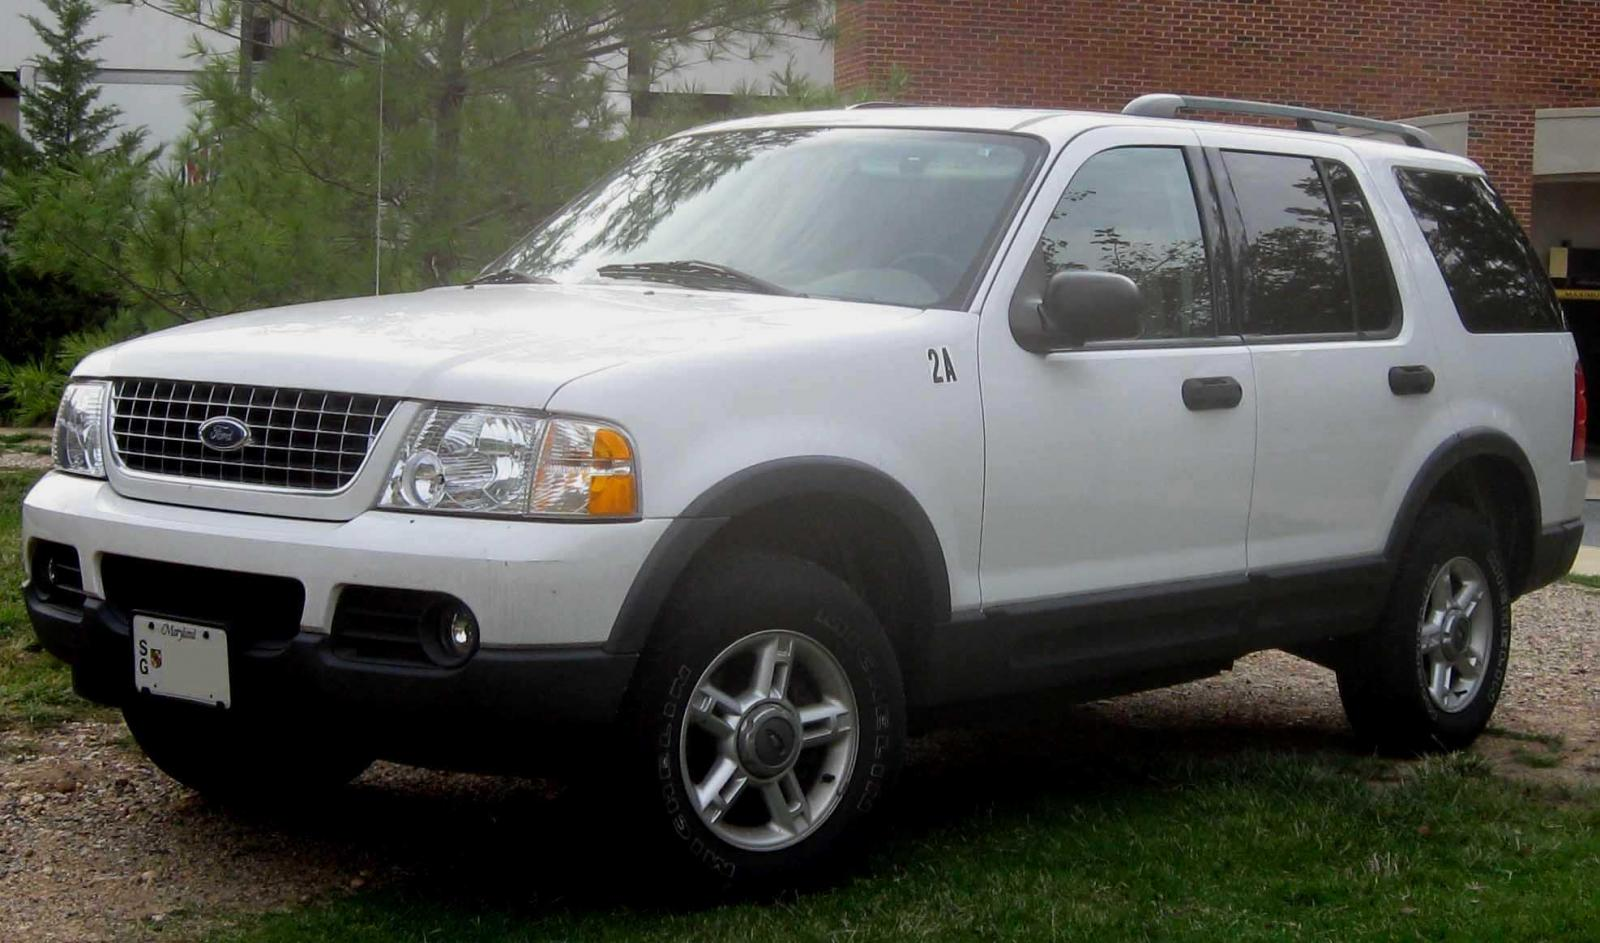 2008 ford explorer information and photos zombiedrive rh zombdrive com 2004 ford explorer xlt service manual 2004 ford explorer sport trac owners manual